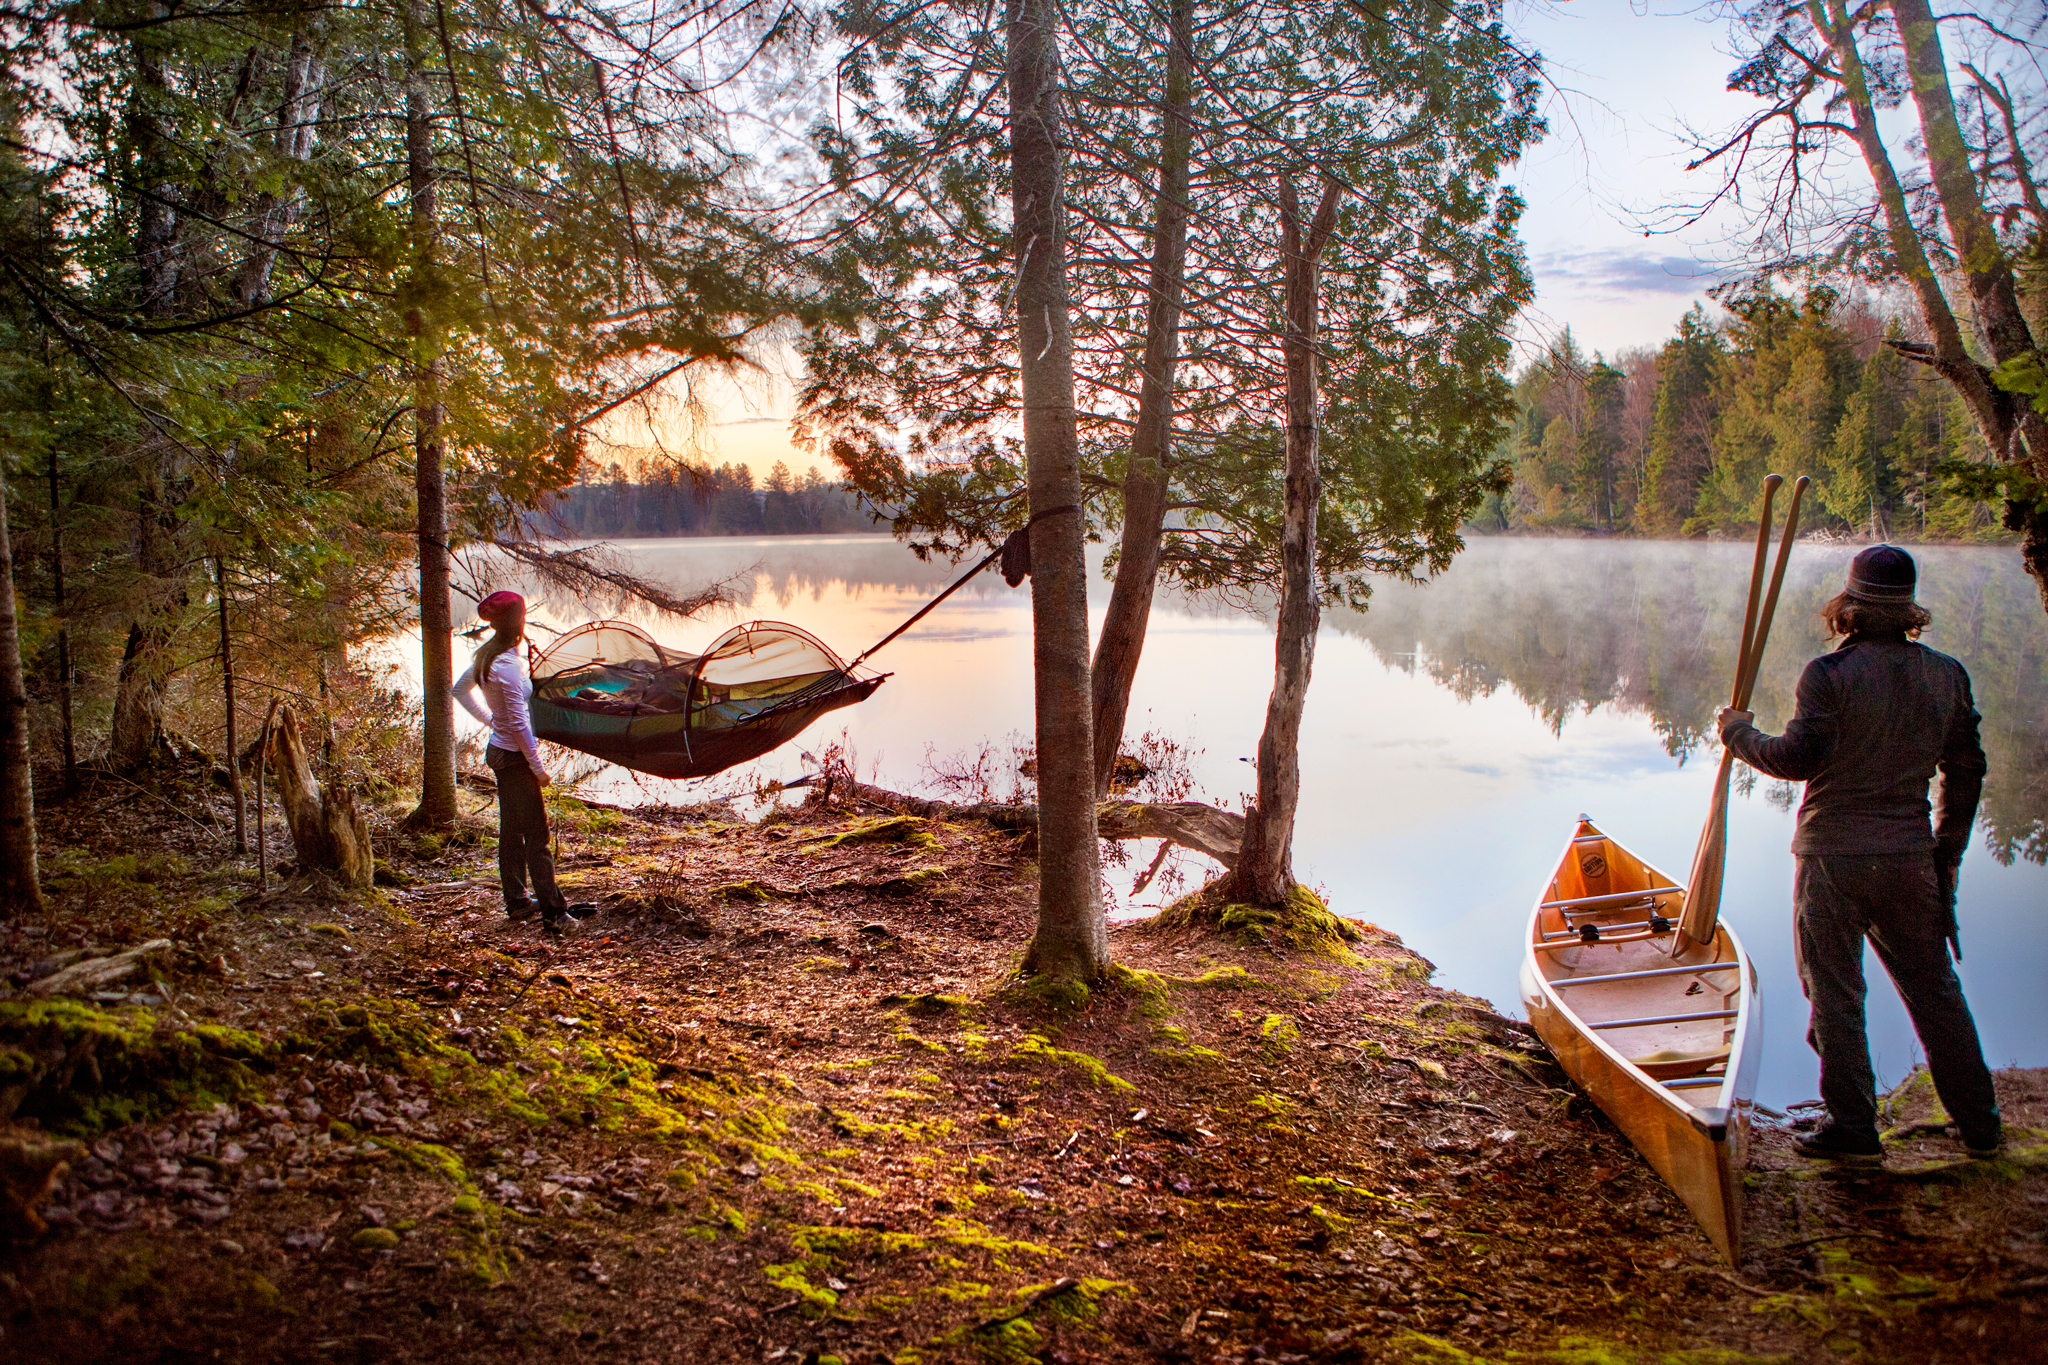 Lawson Hammock and Wenonah Canoe at our first night's camp